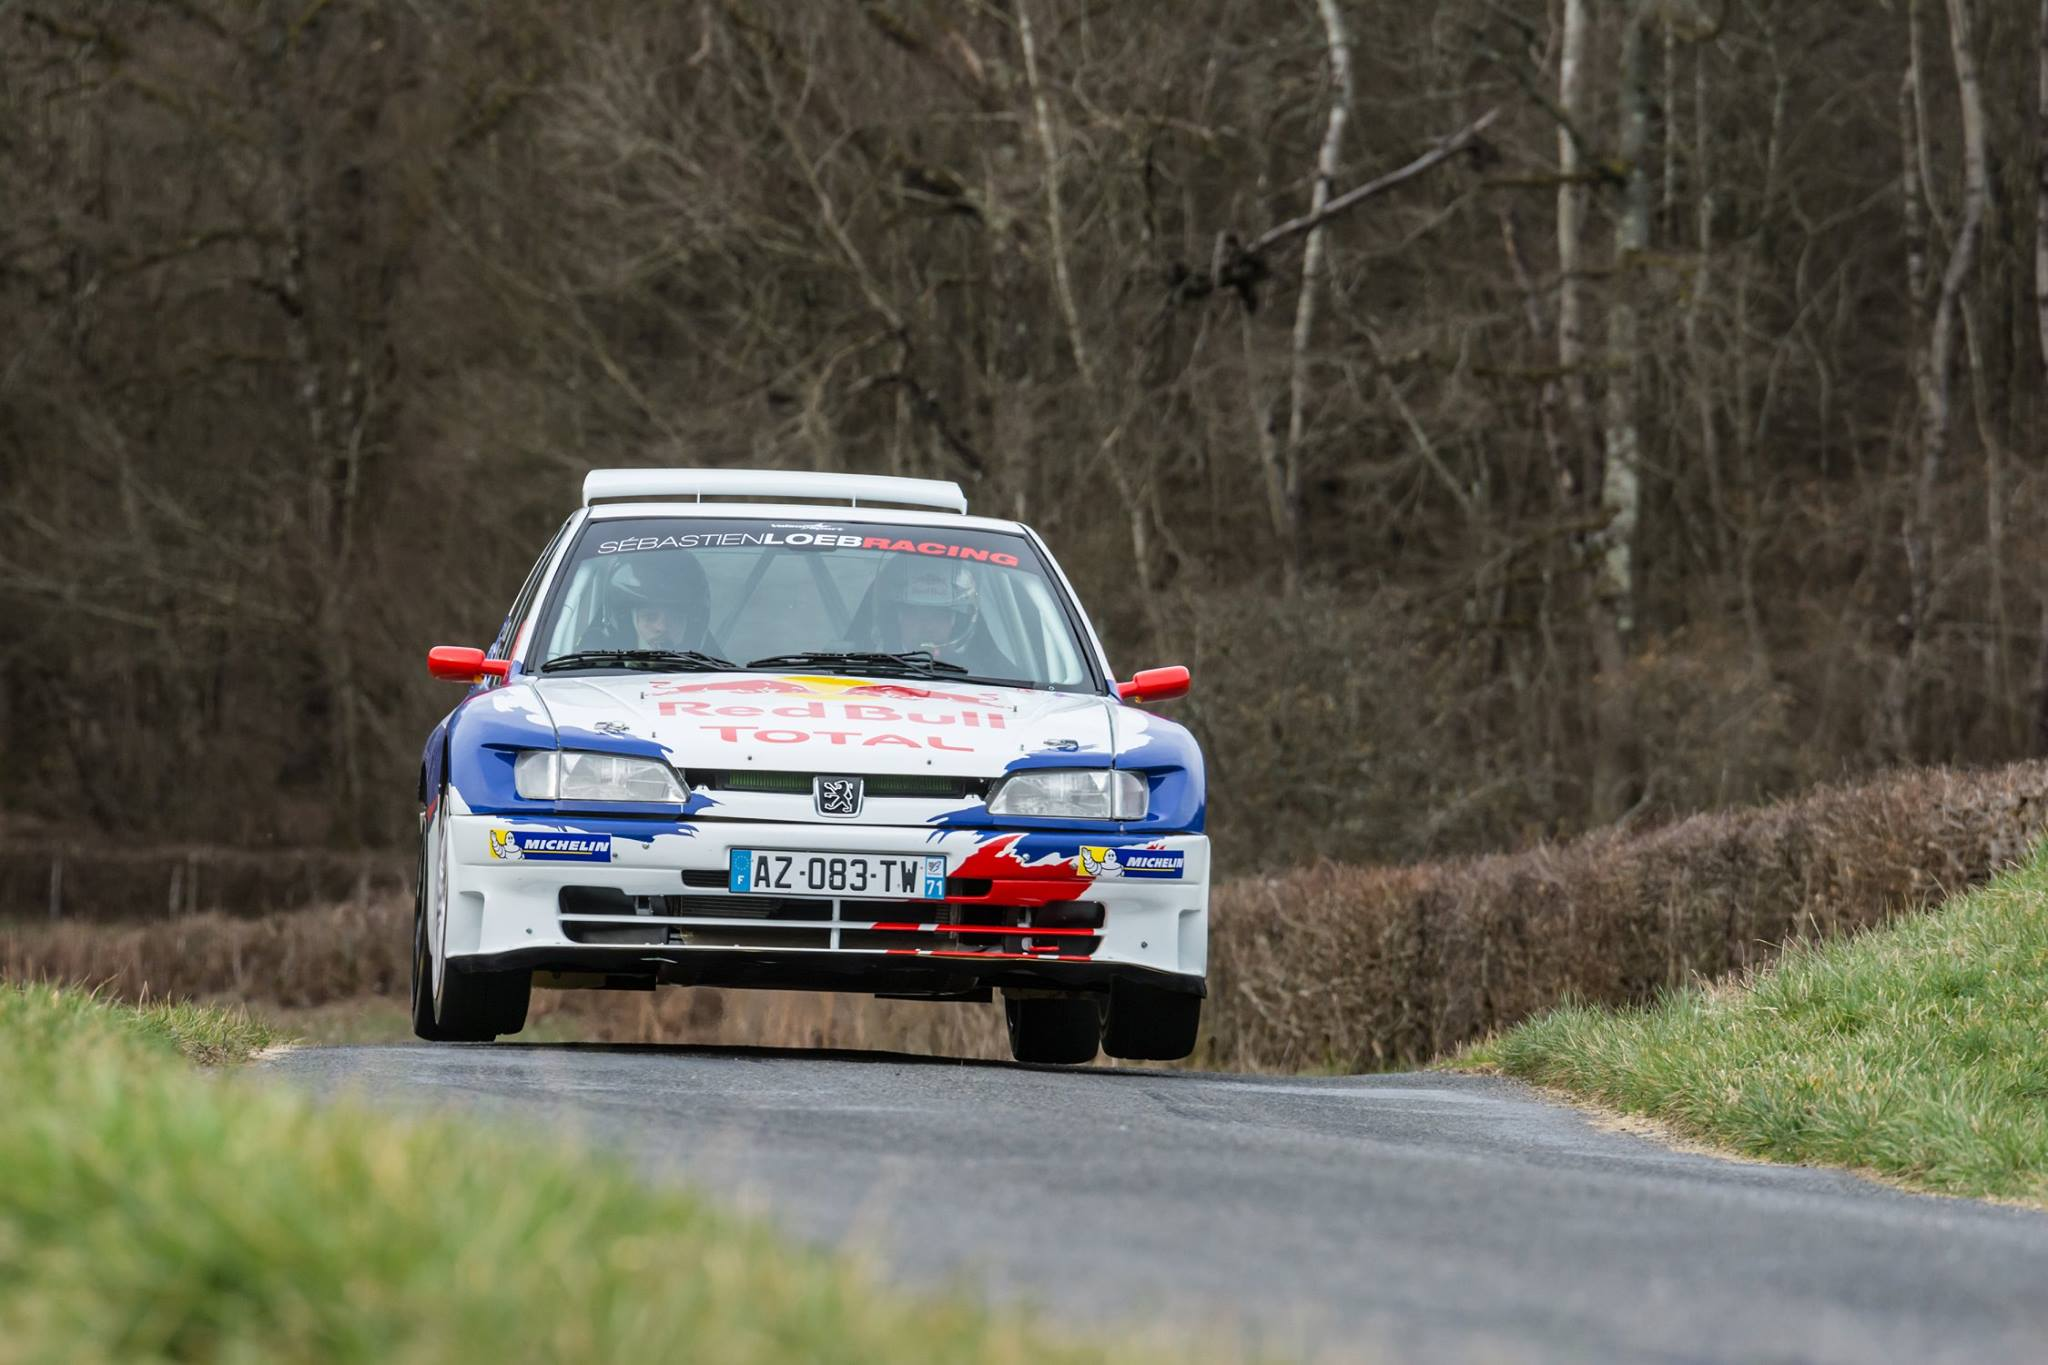 rally legend loeb drives 18 year old car to victory finishes with 30 sec lead autoevolution. Black Bedroom Furniture Sets. Home Design Ideas